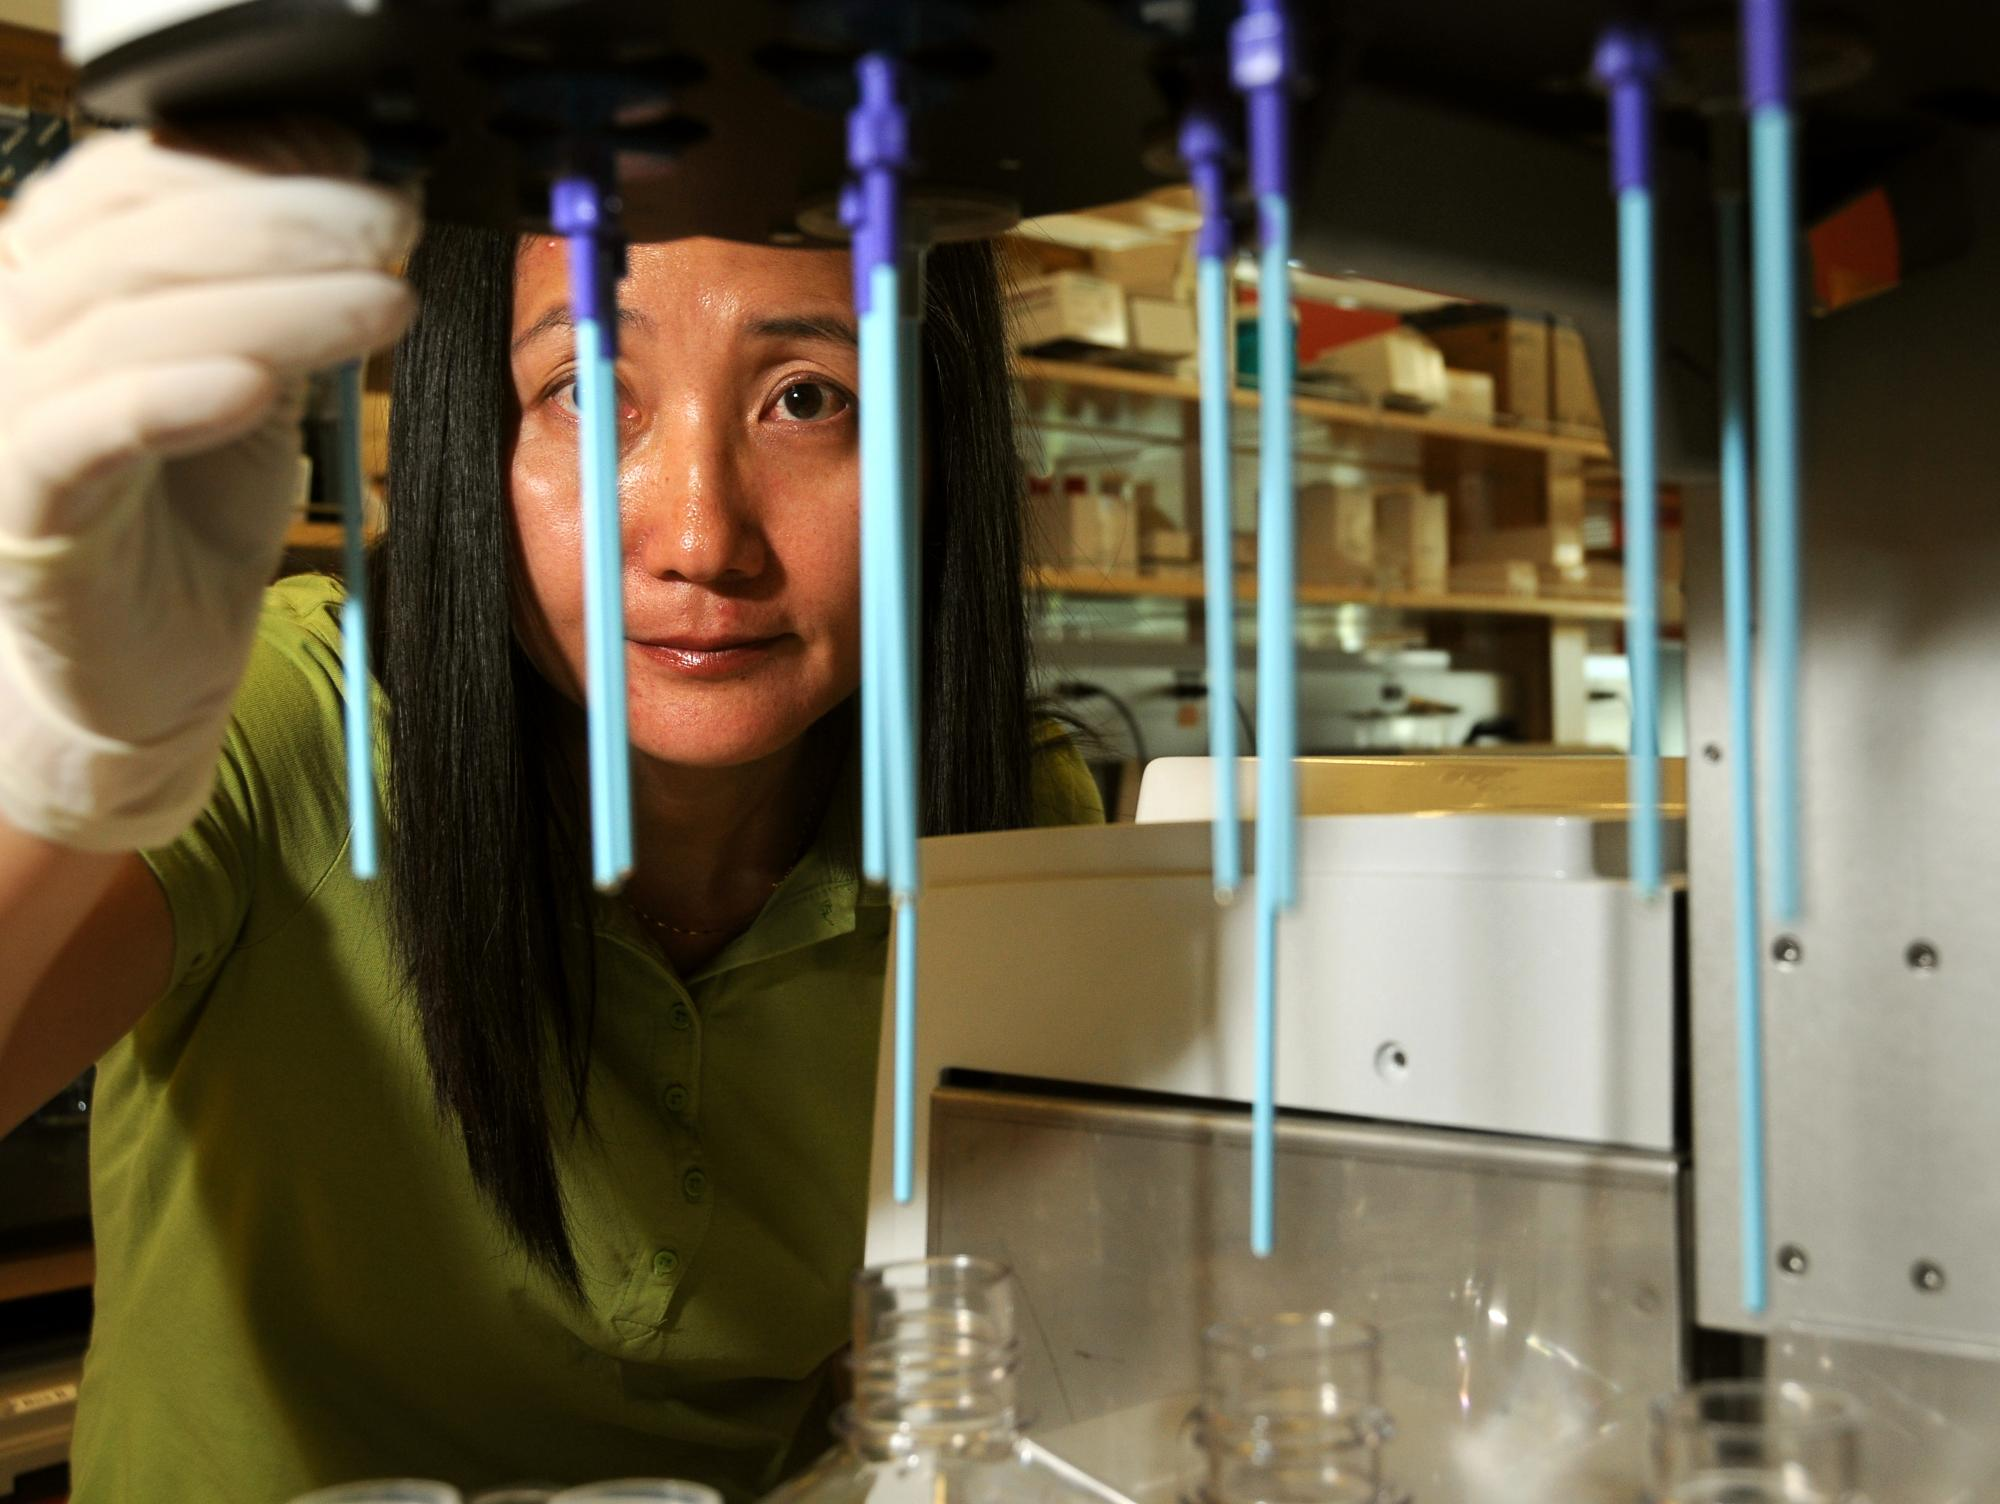 Seunghee Lee, an assistant research scientist and expert in plant science, has worked with sequencing samples at the Wing Lab at the BIO5 Institute